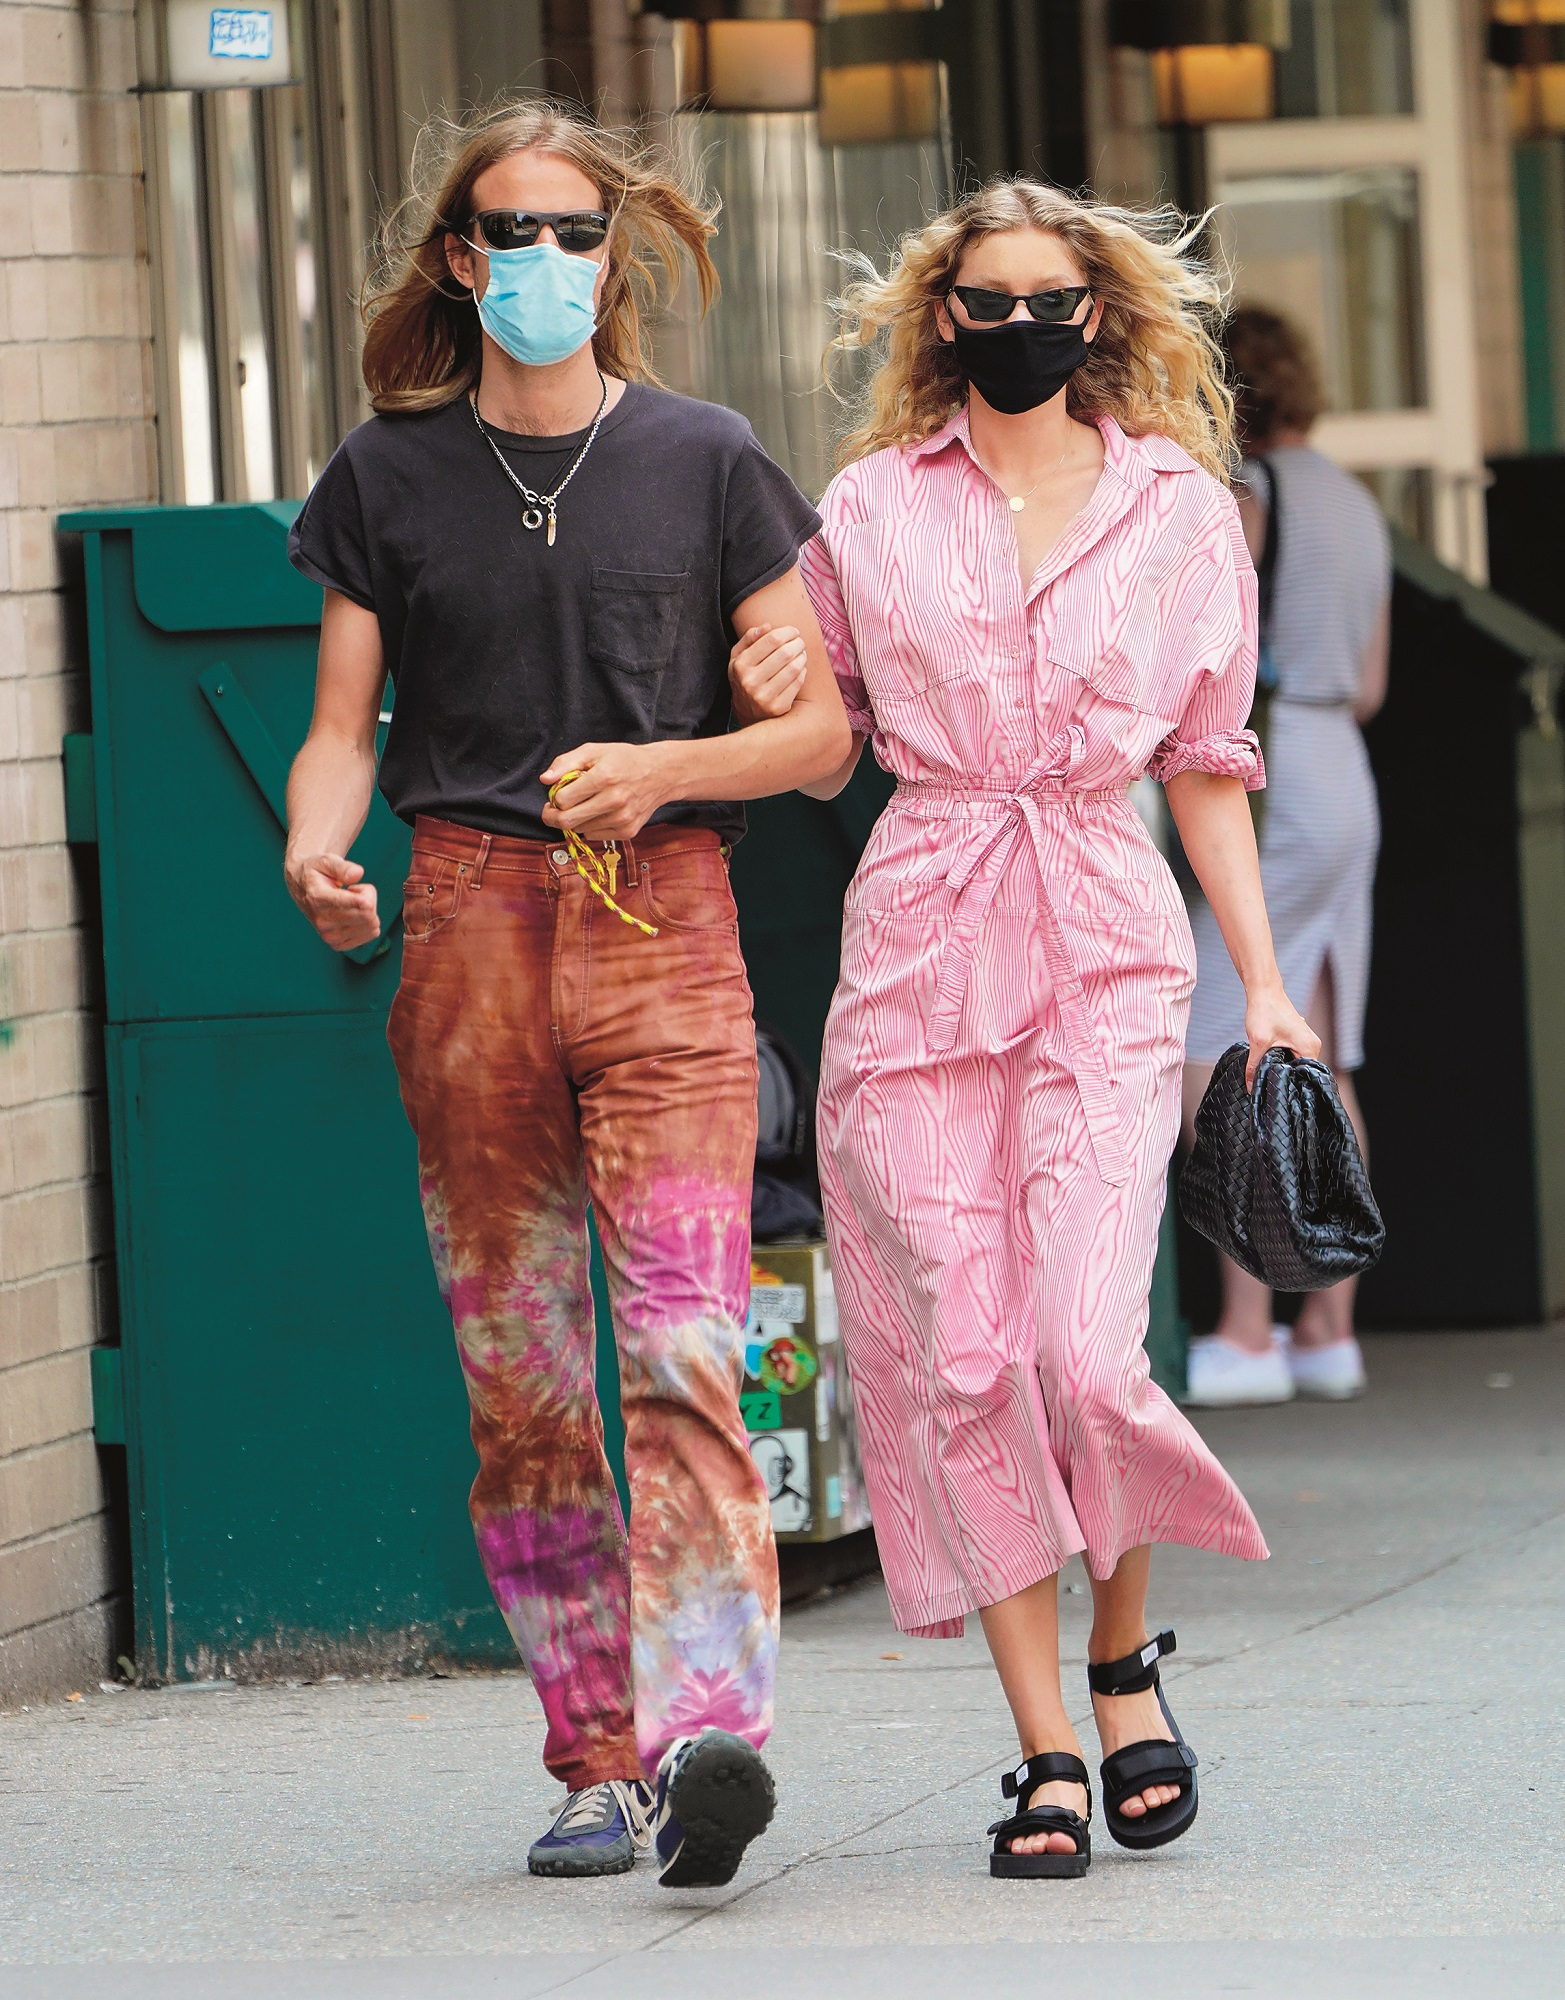 EXCLUSIVE: Elsa Hosk is pretty in pink when out and about with husband Tom Daly in sunny New York  Pictured: Elsa Hosk,Tom Daly,Image: 530070026, License: Rights-managed, Restrictions: -PRT, Model Release: no, Credit line: Jackson Lee / SplashNews.com / Splash / Profimedia